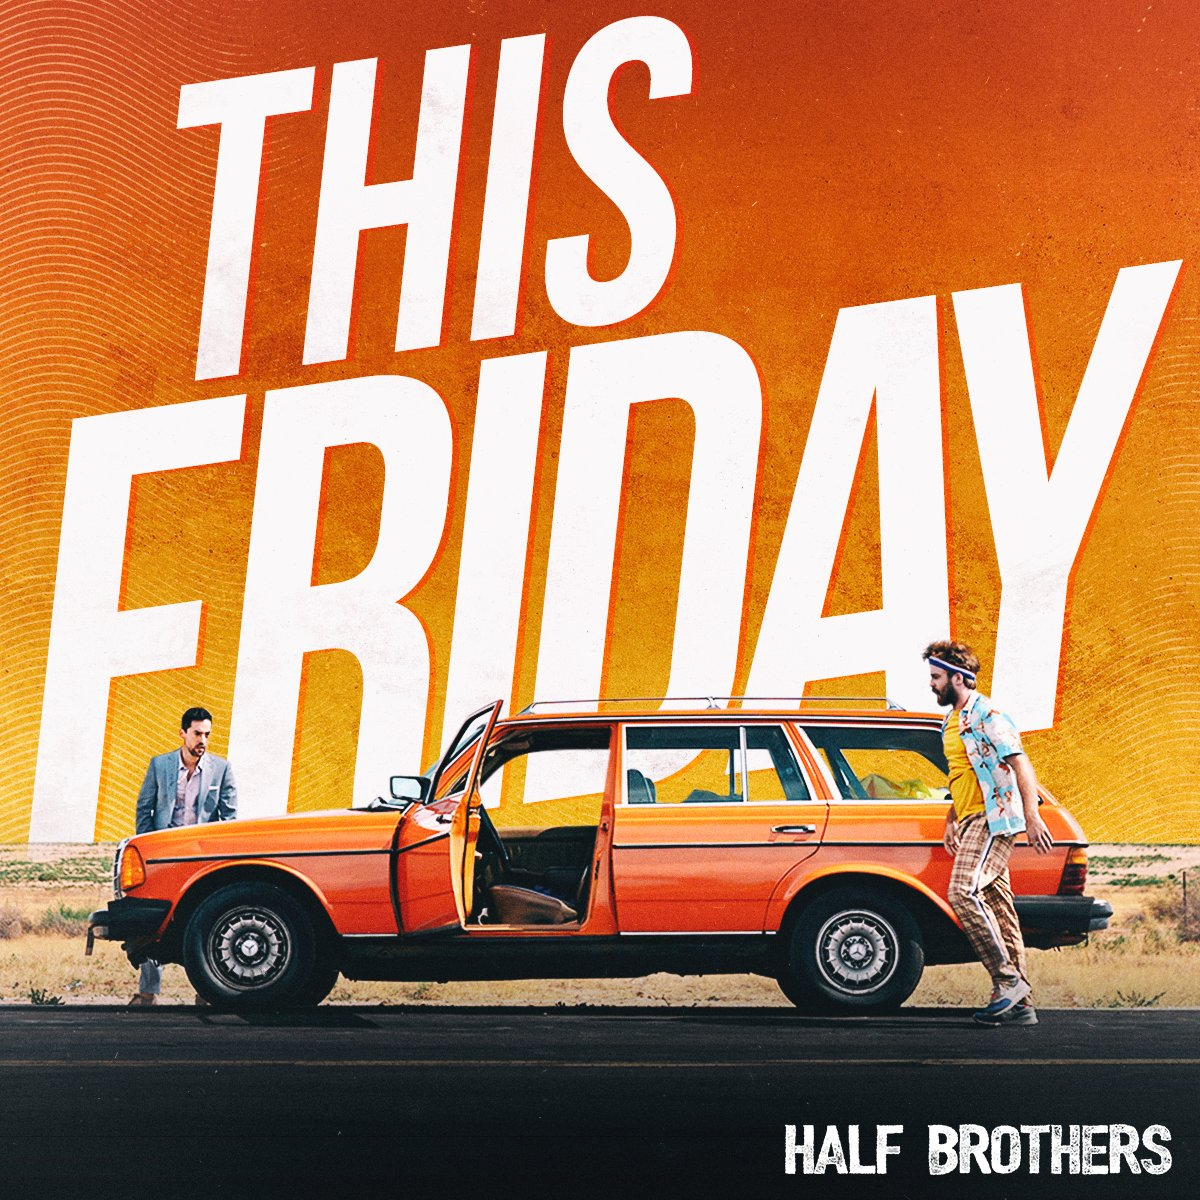 In TWO DAYS, get ready for one epic road trip. #SignInAndSave wen you reserve your seats for #HalfBrothers through the #Free #EXTRAS Program:  🚗🐐 #MakeItICONIC